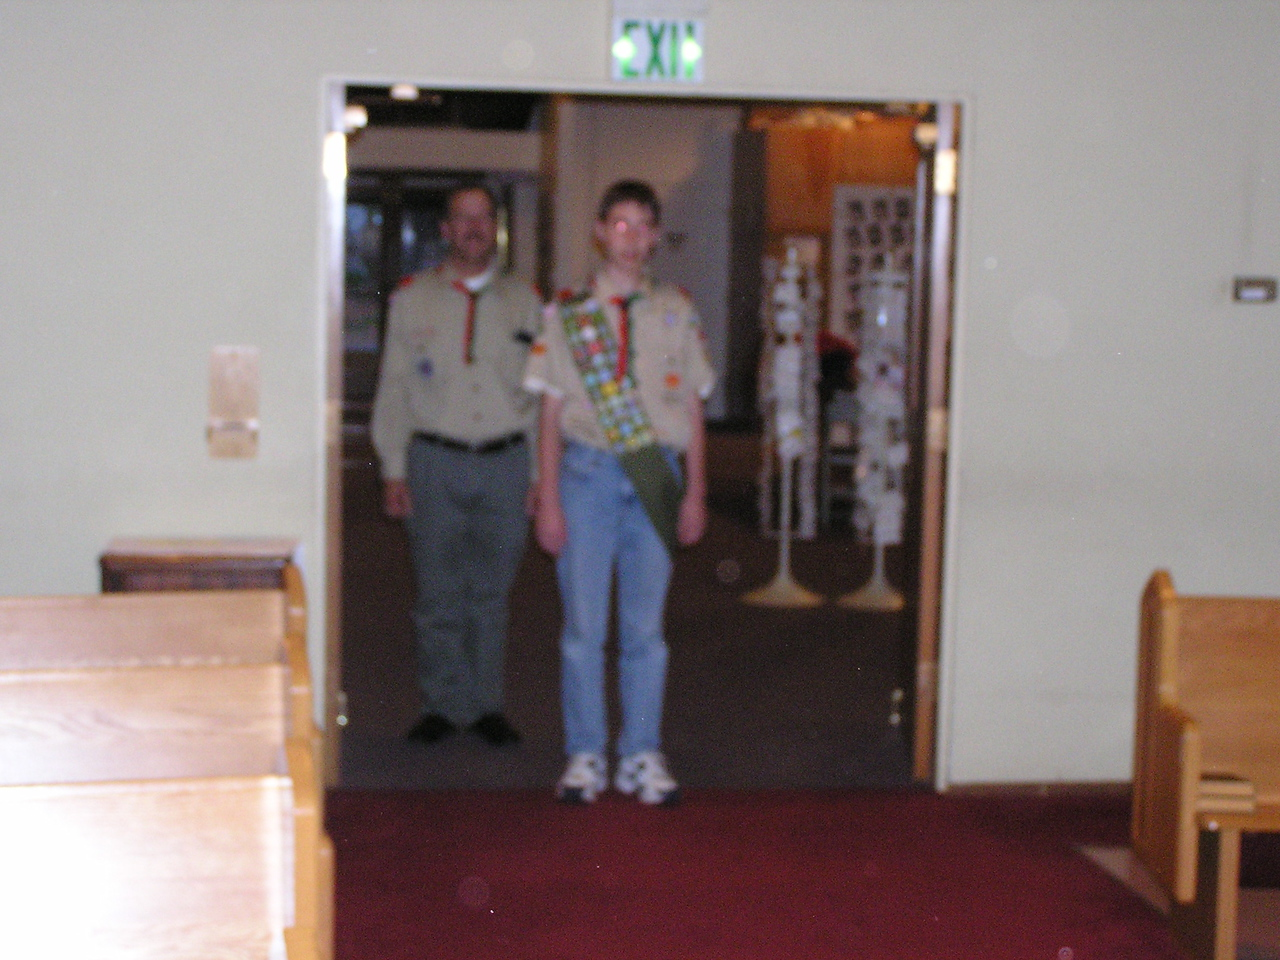 03-09-08 Kevin, Scouts 007